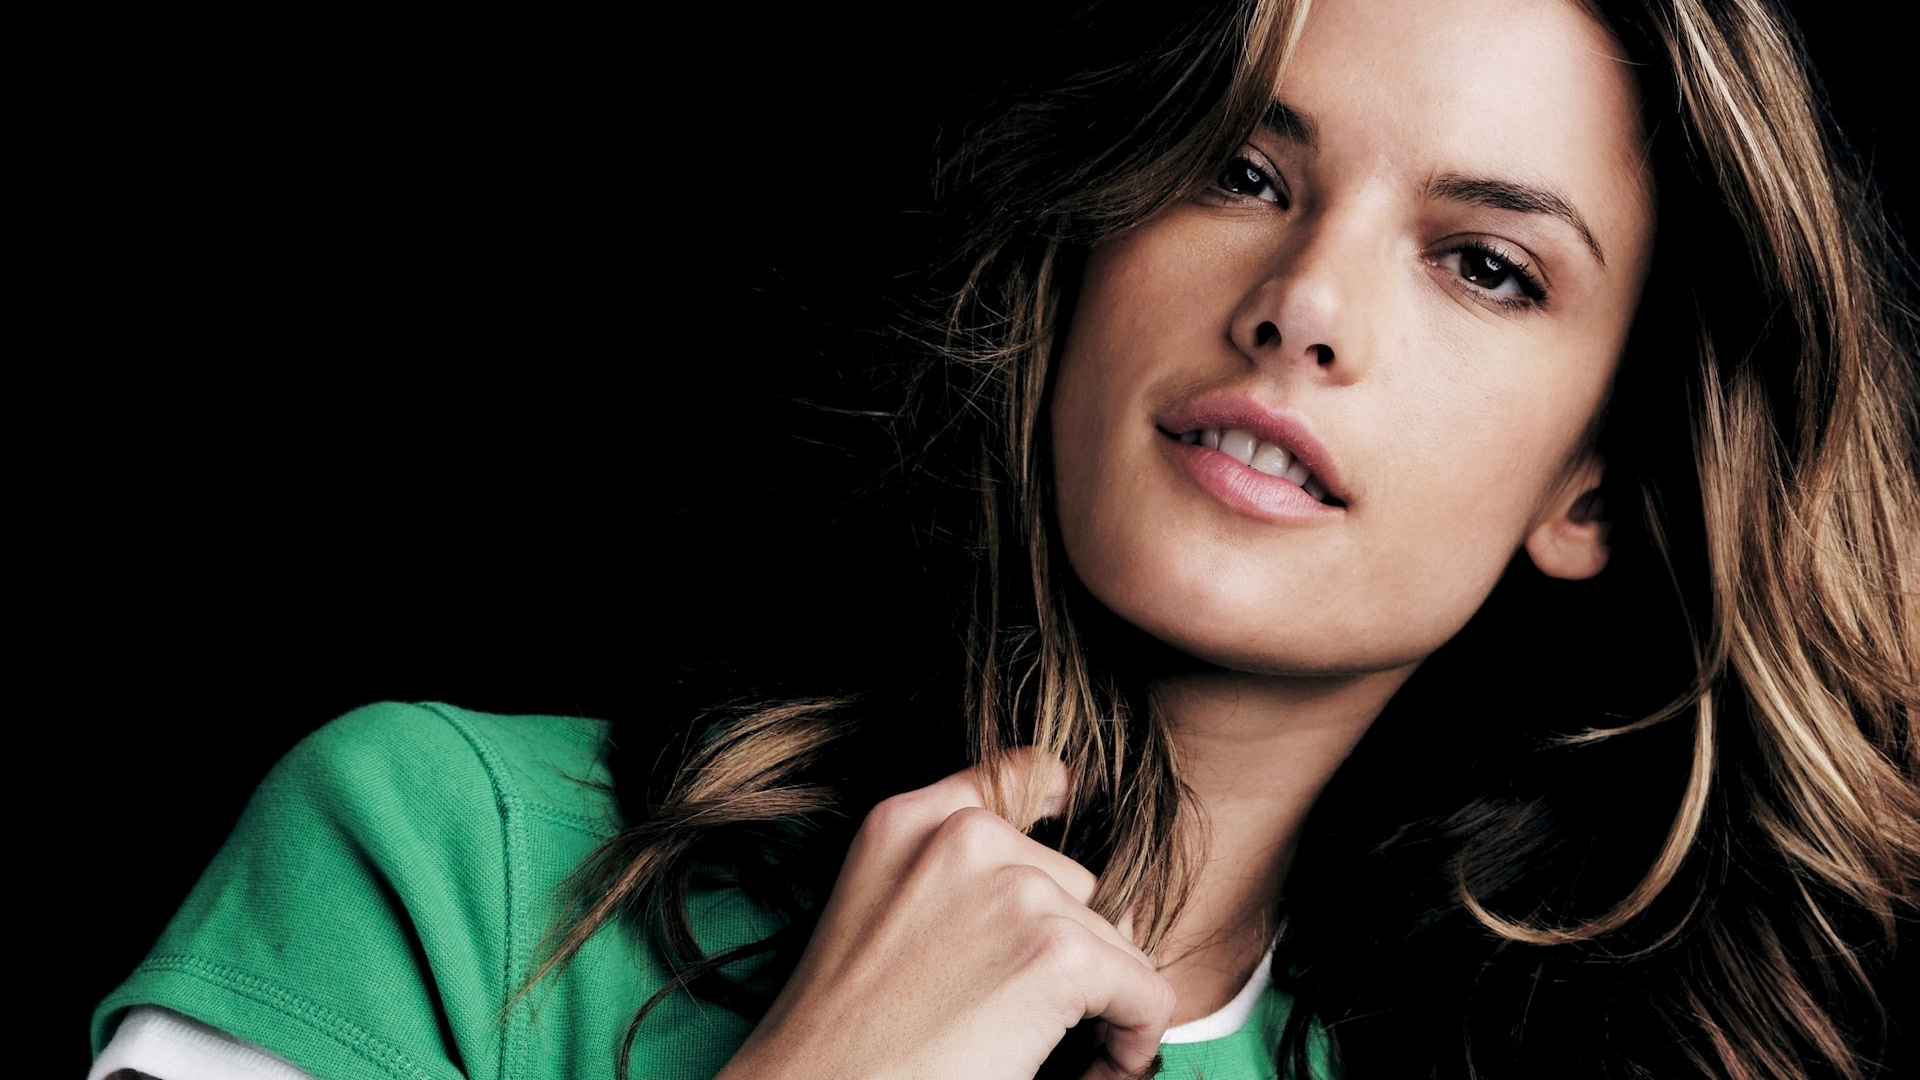 alessandra ambrosio desktop wallpaper 51789